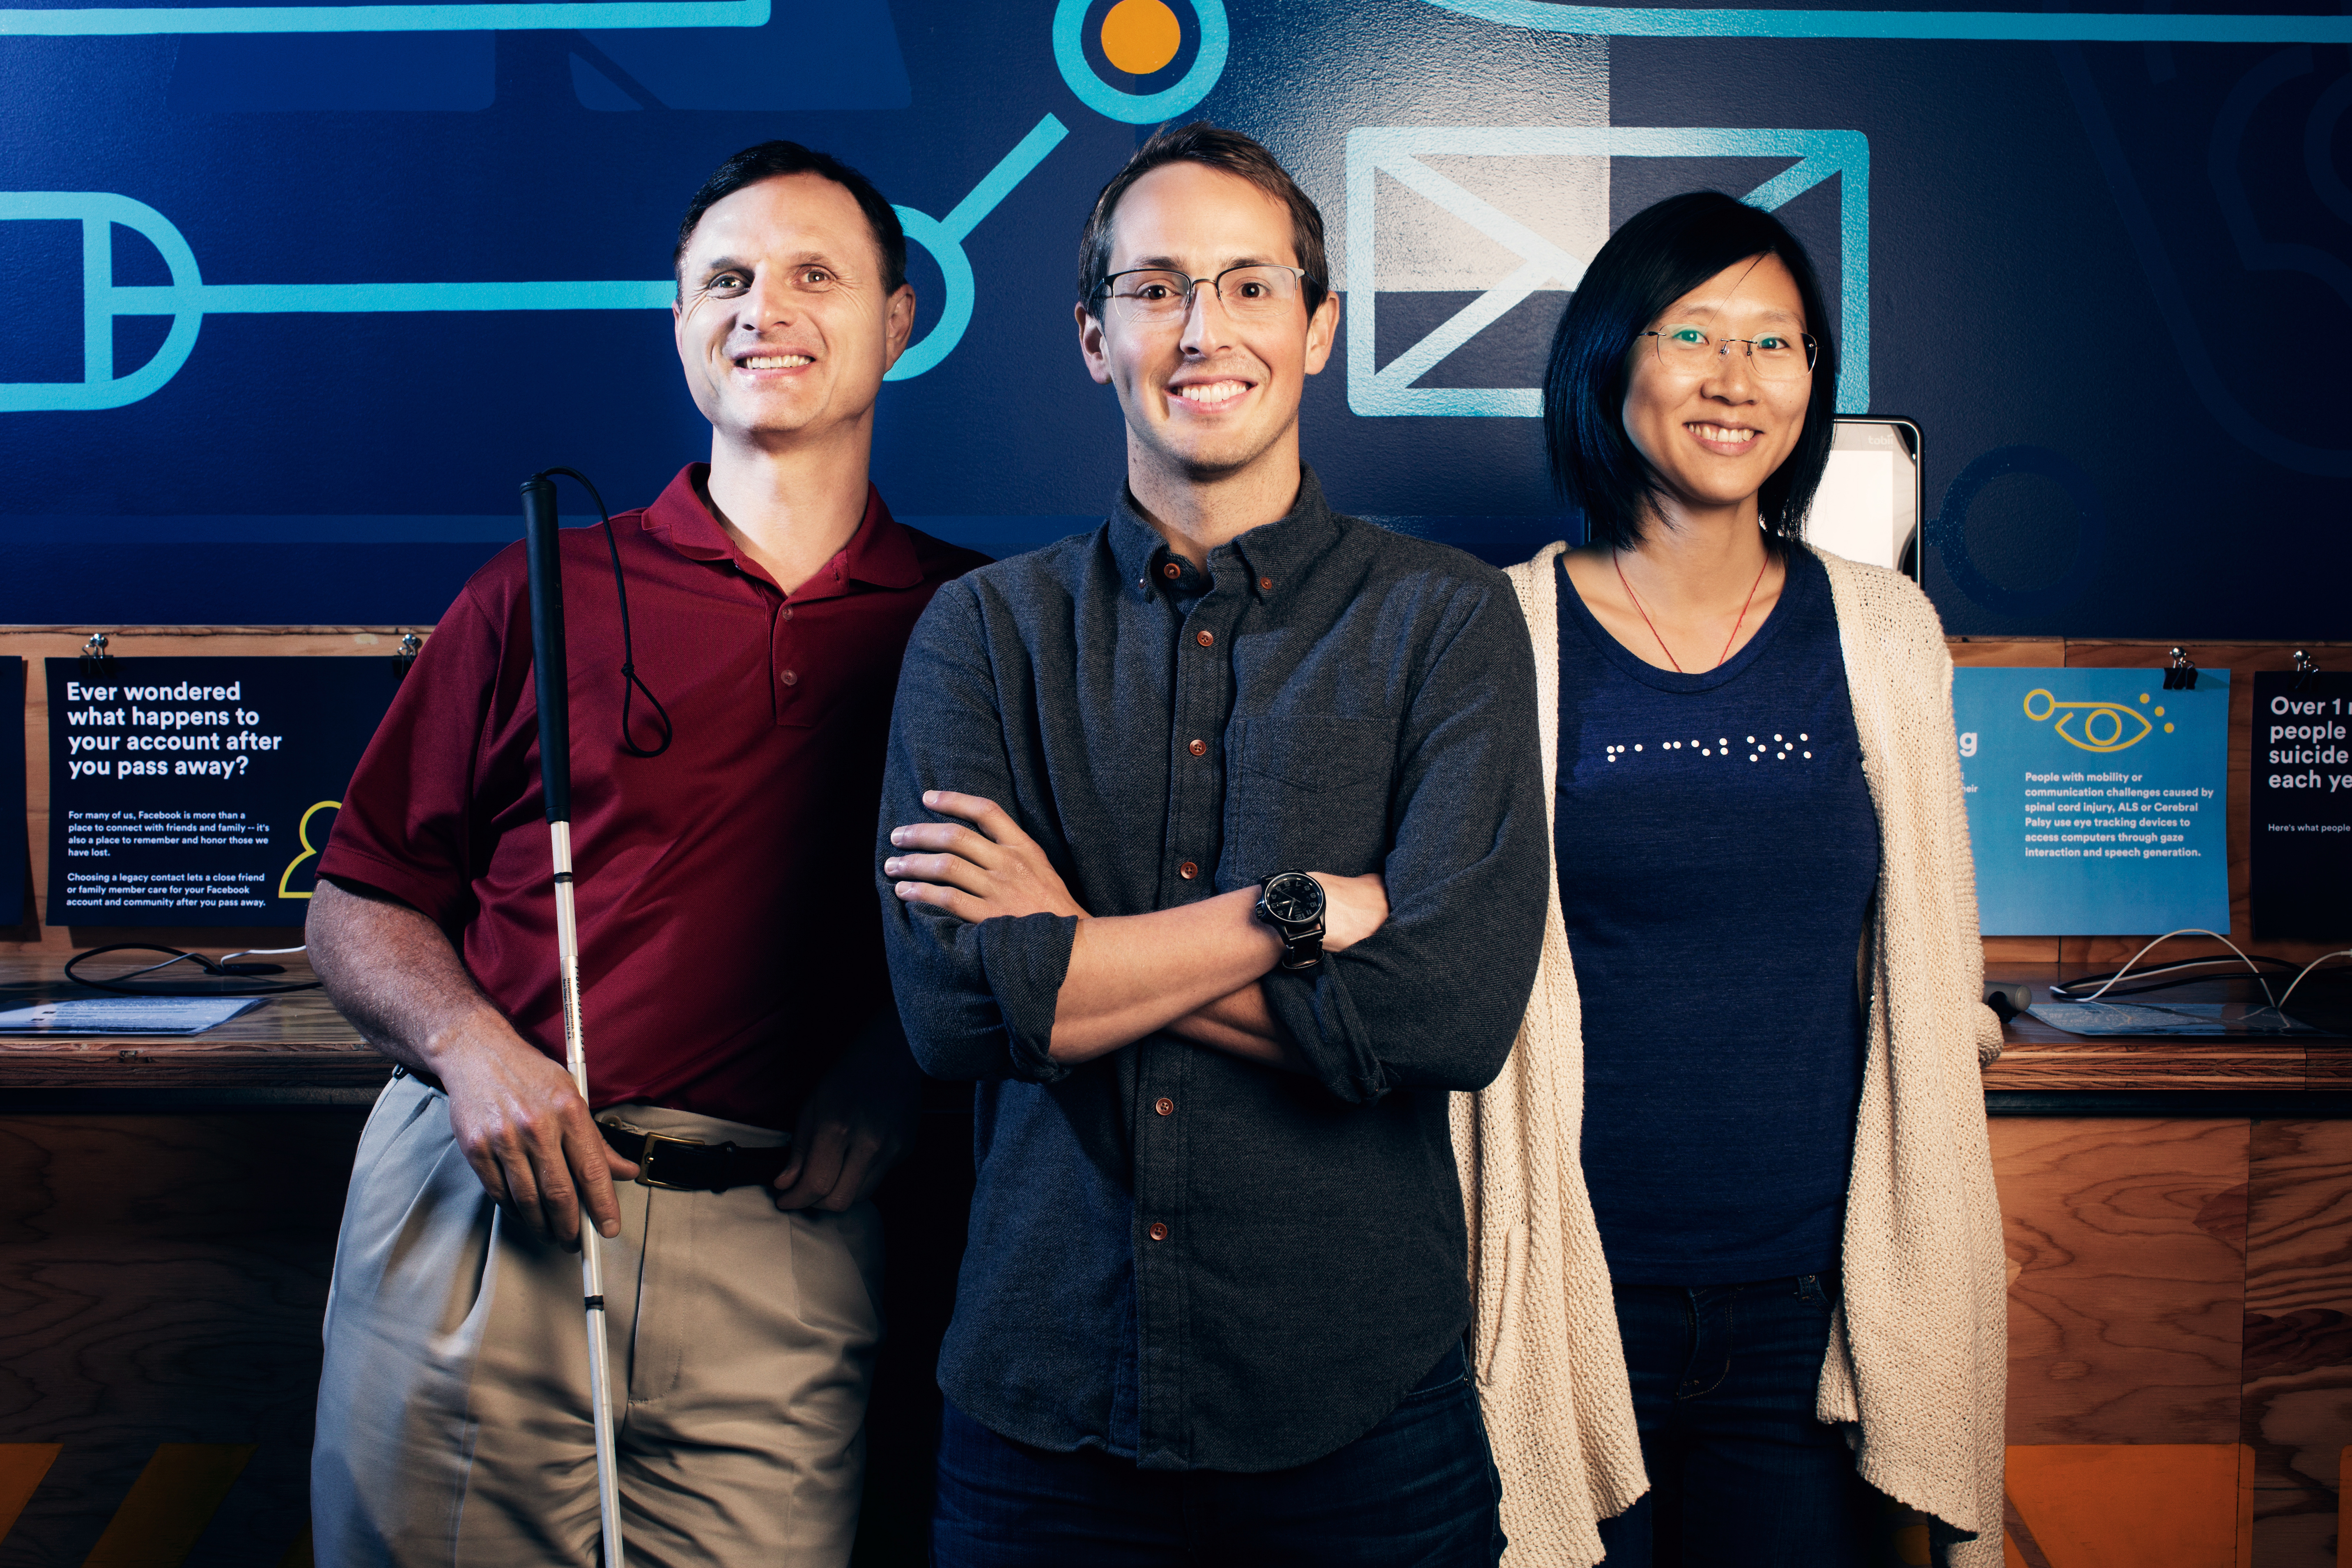 Facebook's accessibility team— Matt King, Jeff Wieland, and Shaomei Wu—are behind the new technology.